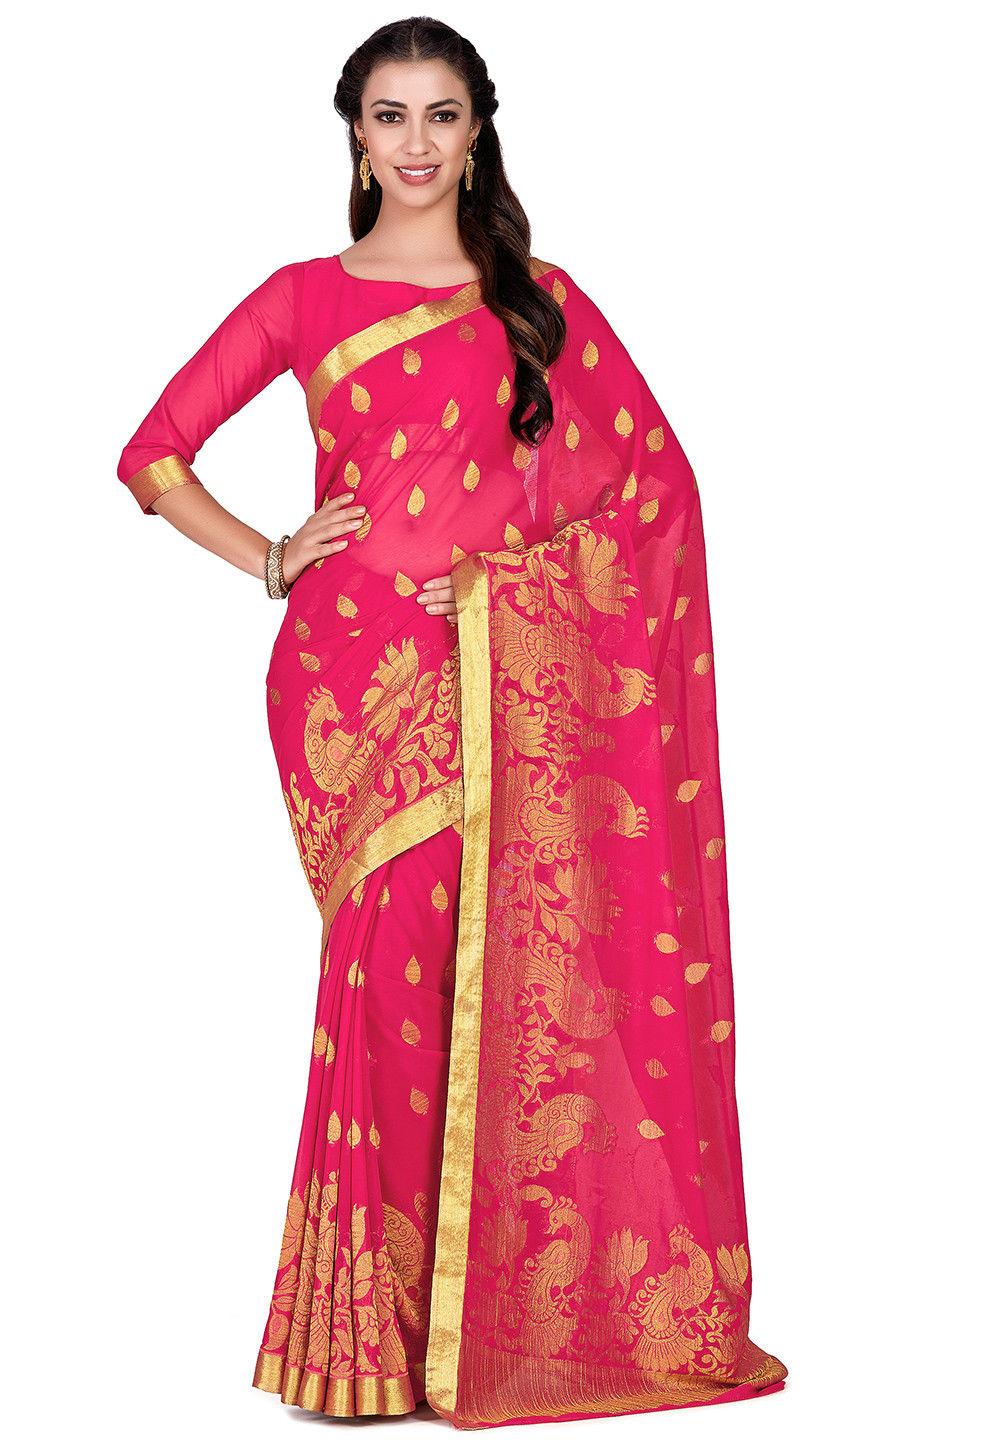 Kanchipuram Chiffon Saree in Fuchsia